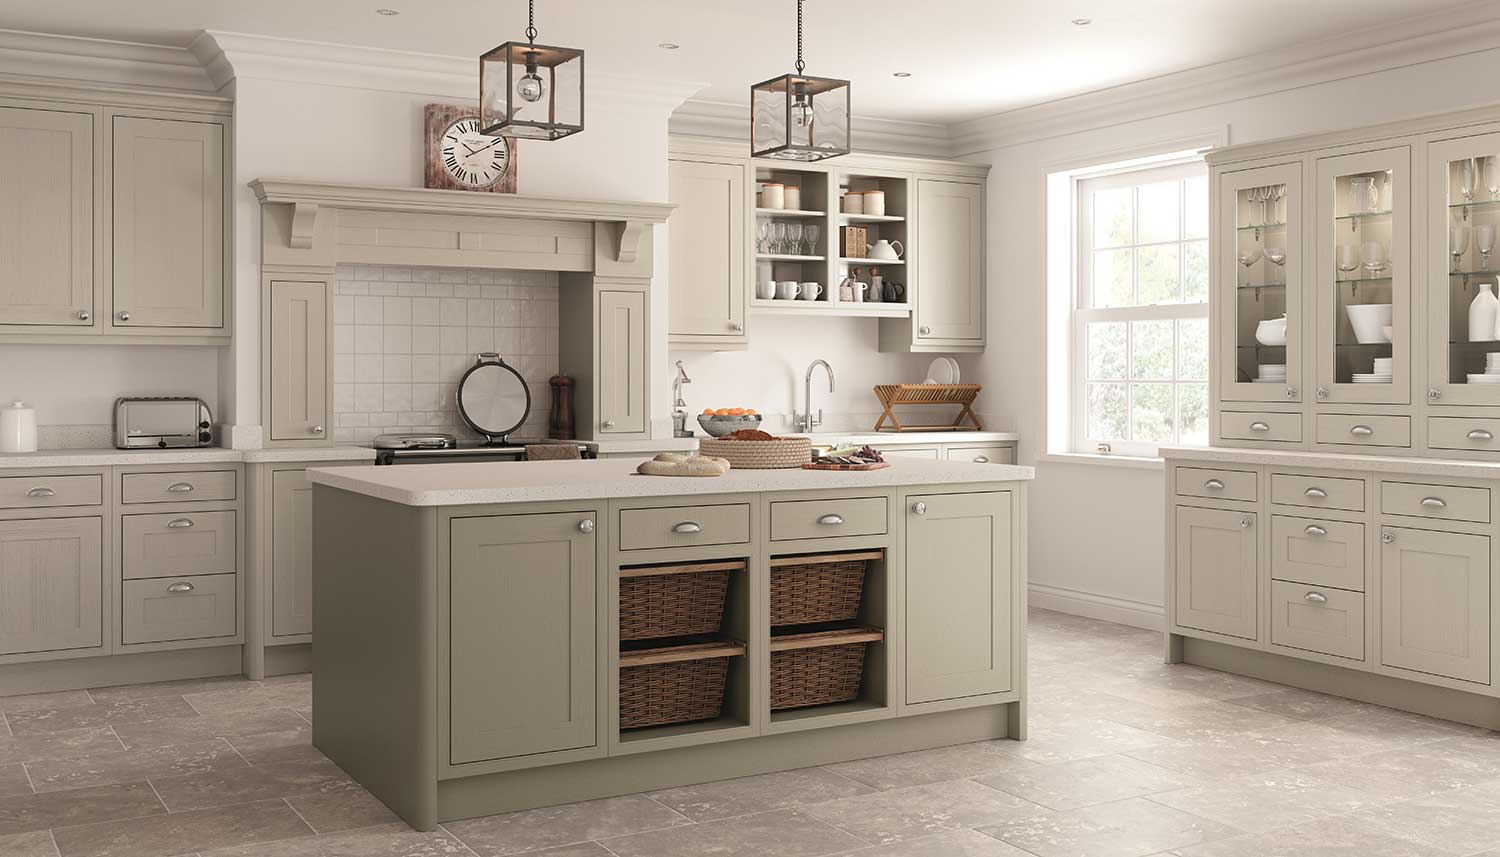 Classic Painted Shaker kitchen shown in Caffe Latte _ Pebble